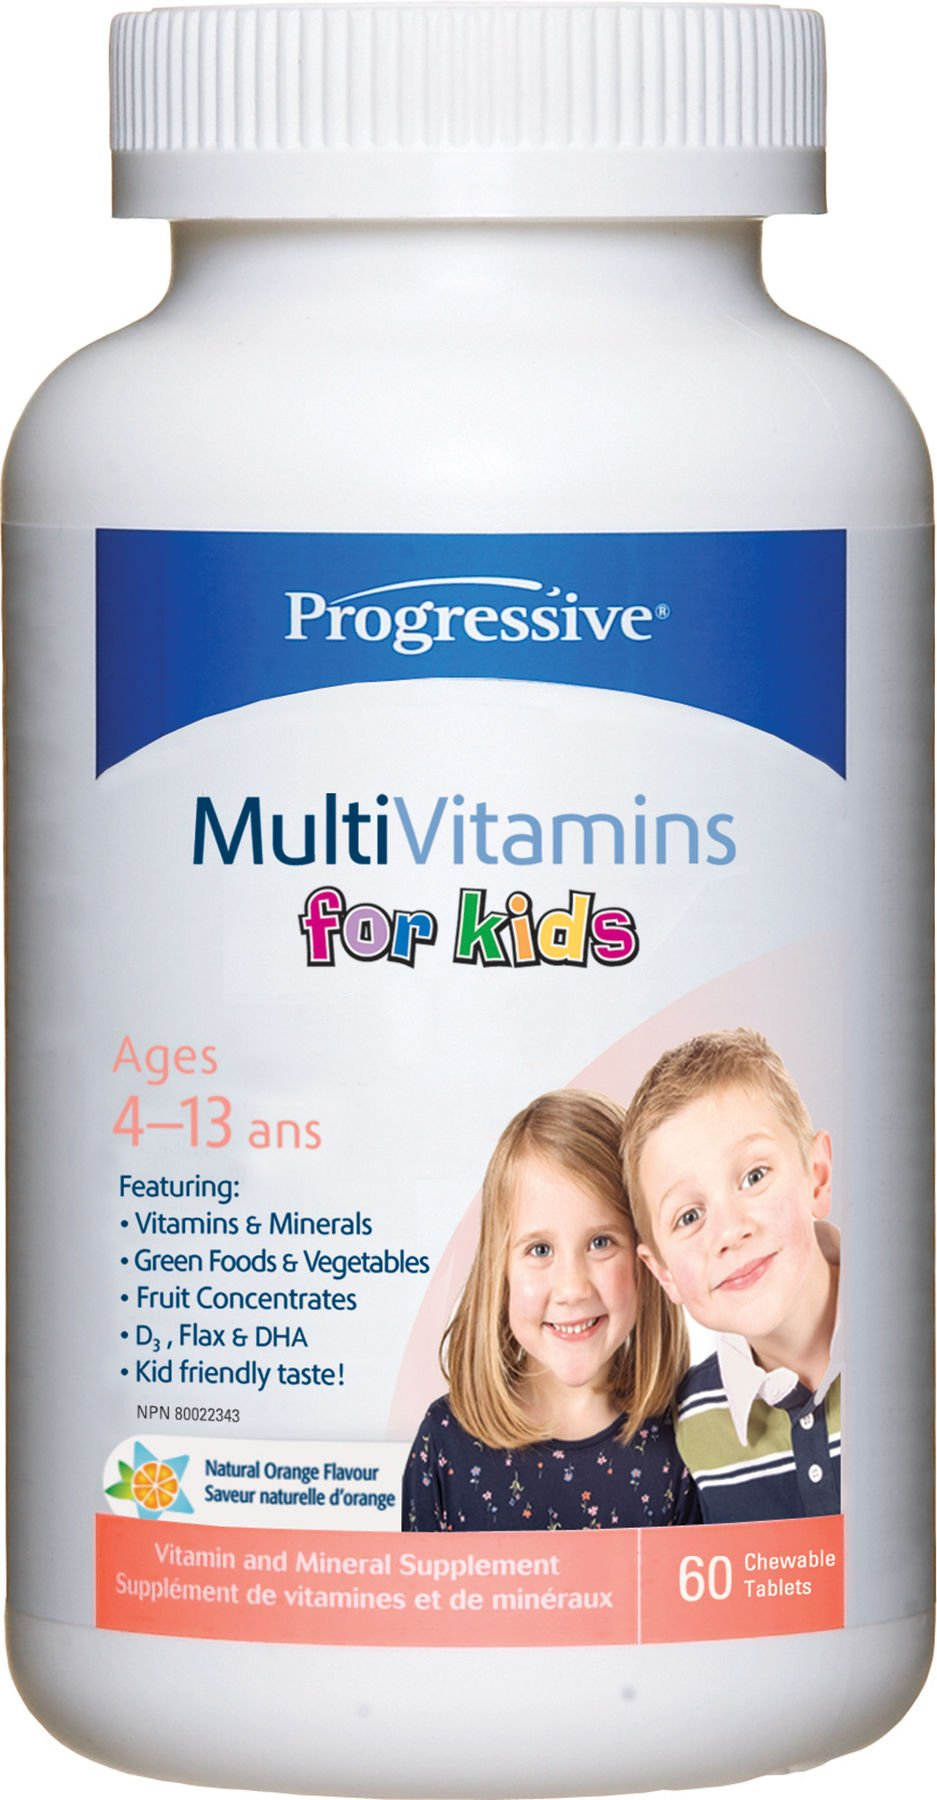 Progressive health products will guide you on your wellness journey